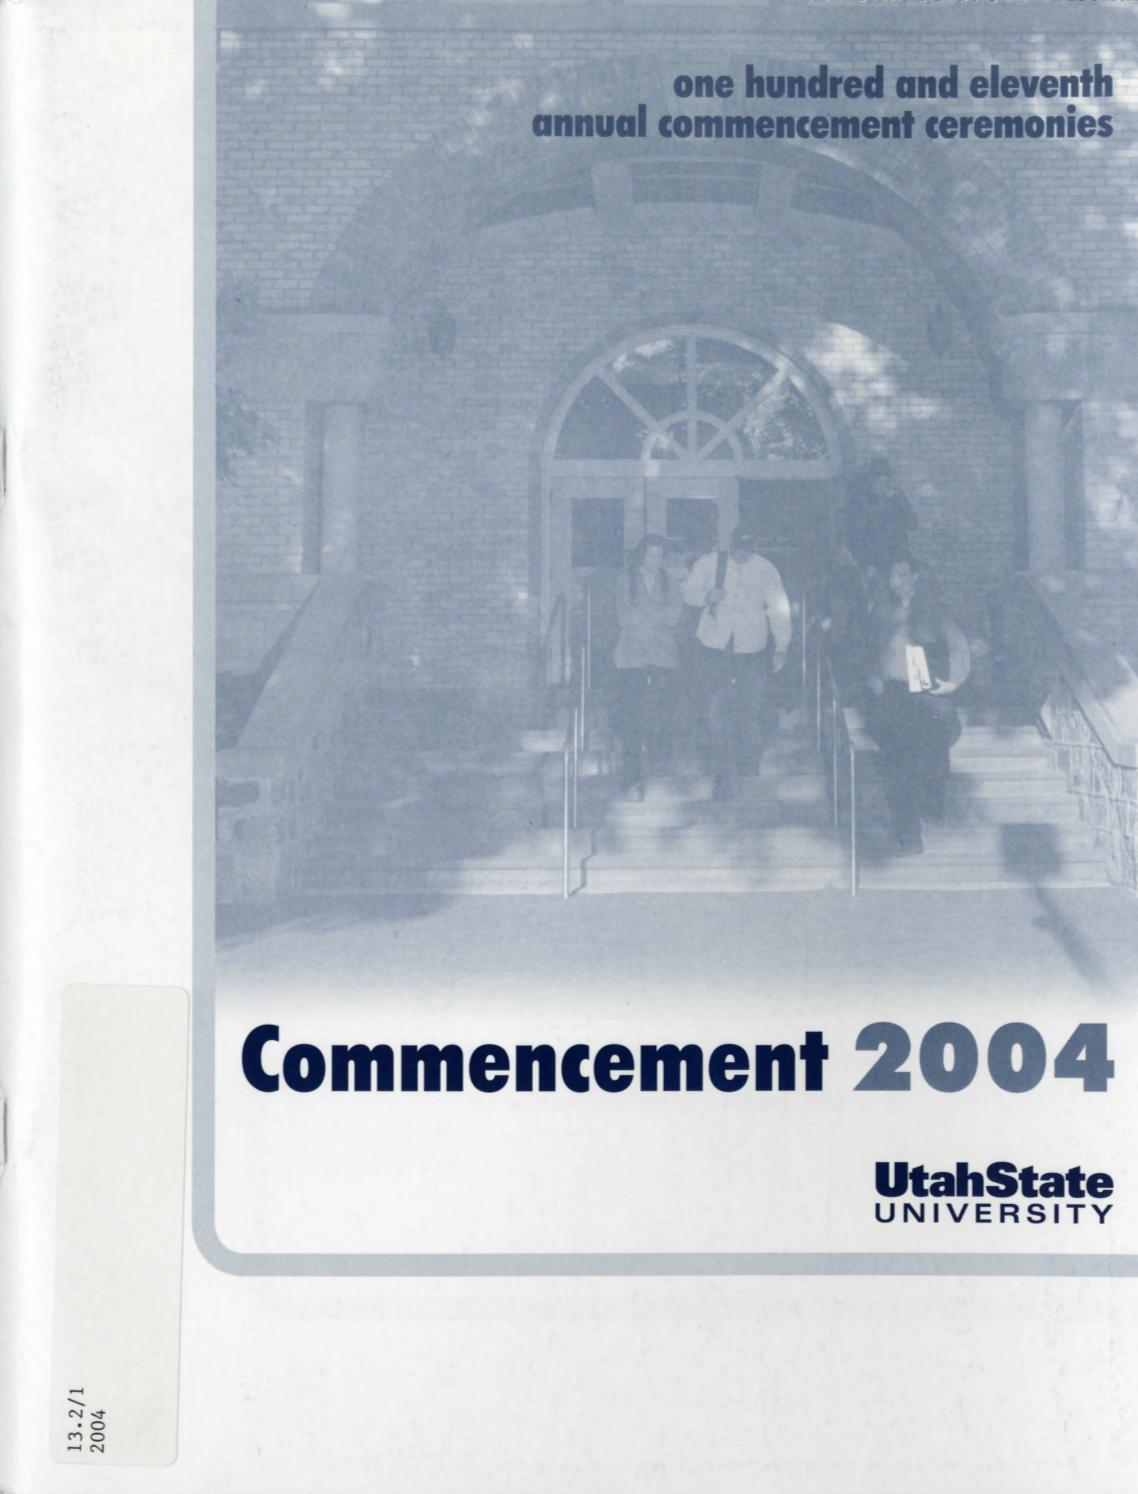 Utah State University Mencement 2004 By USU Digital Mons Issuu